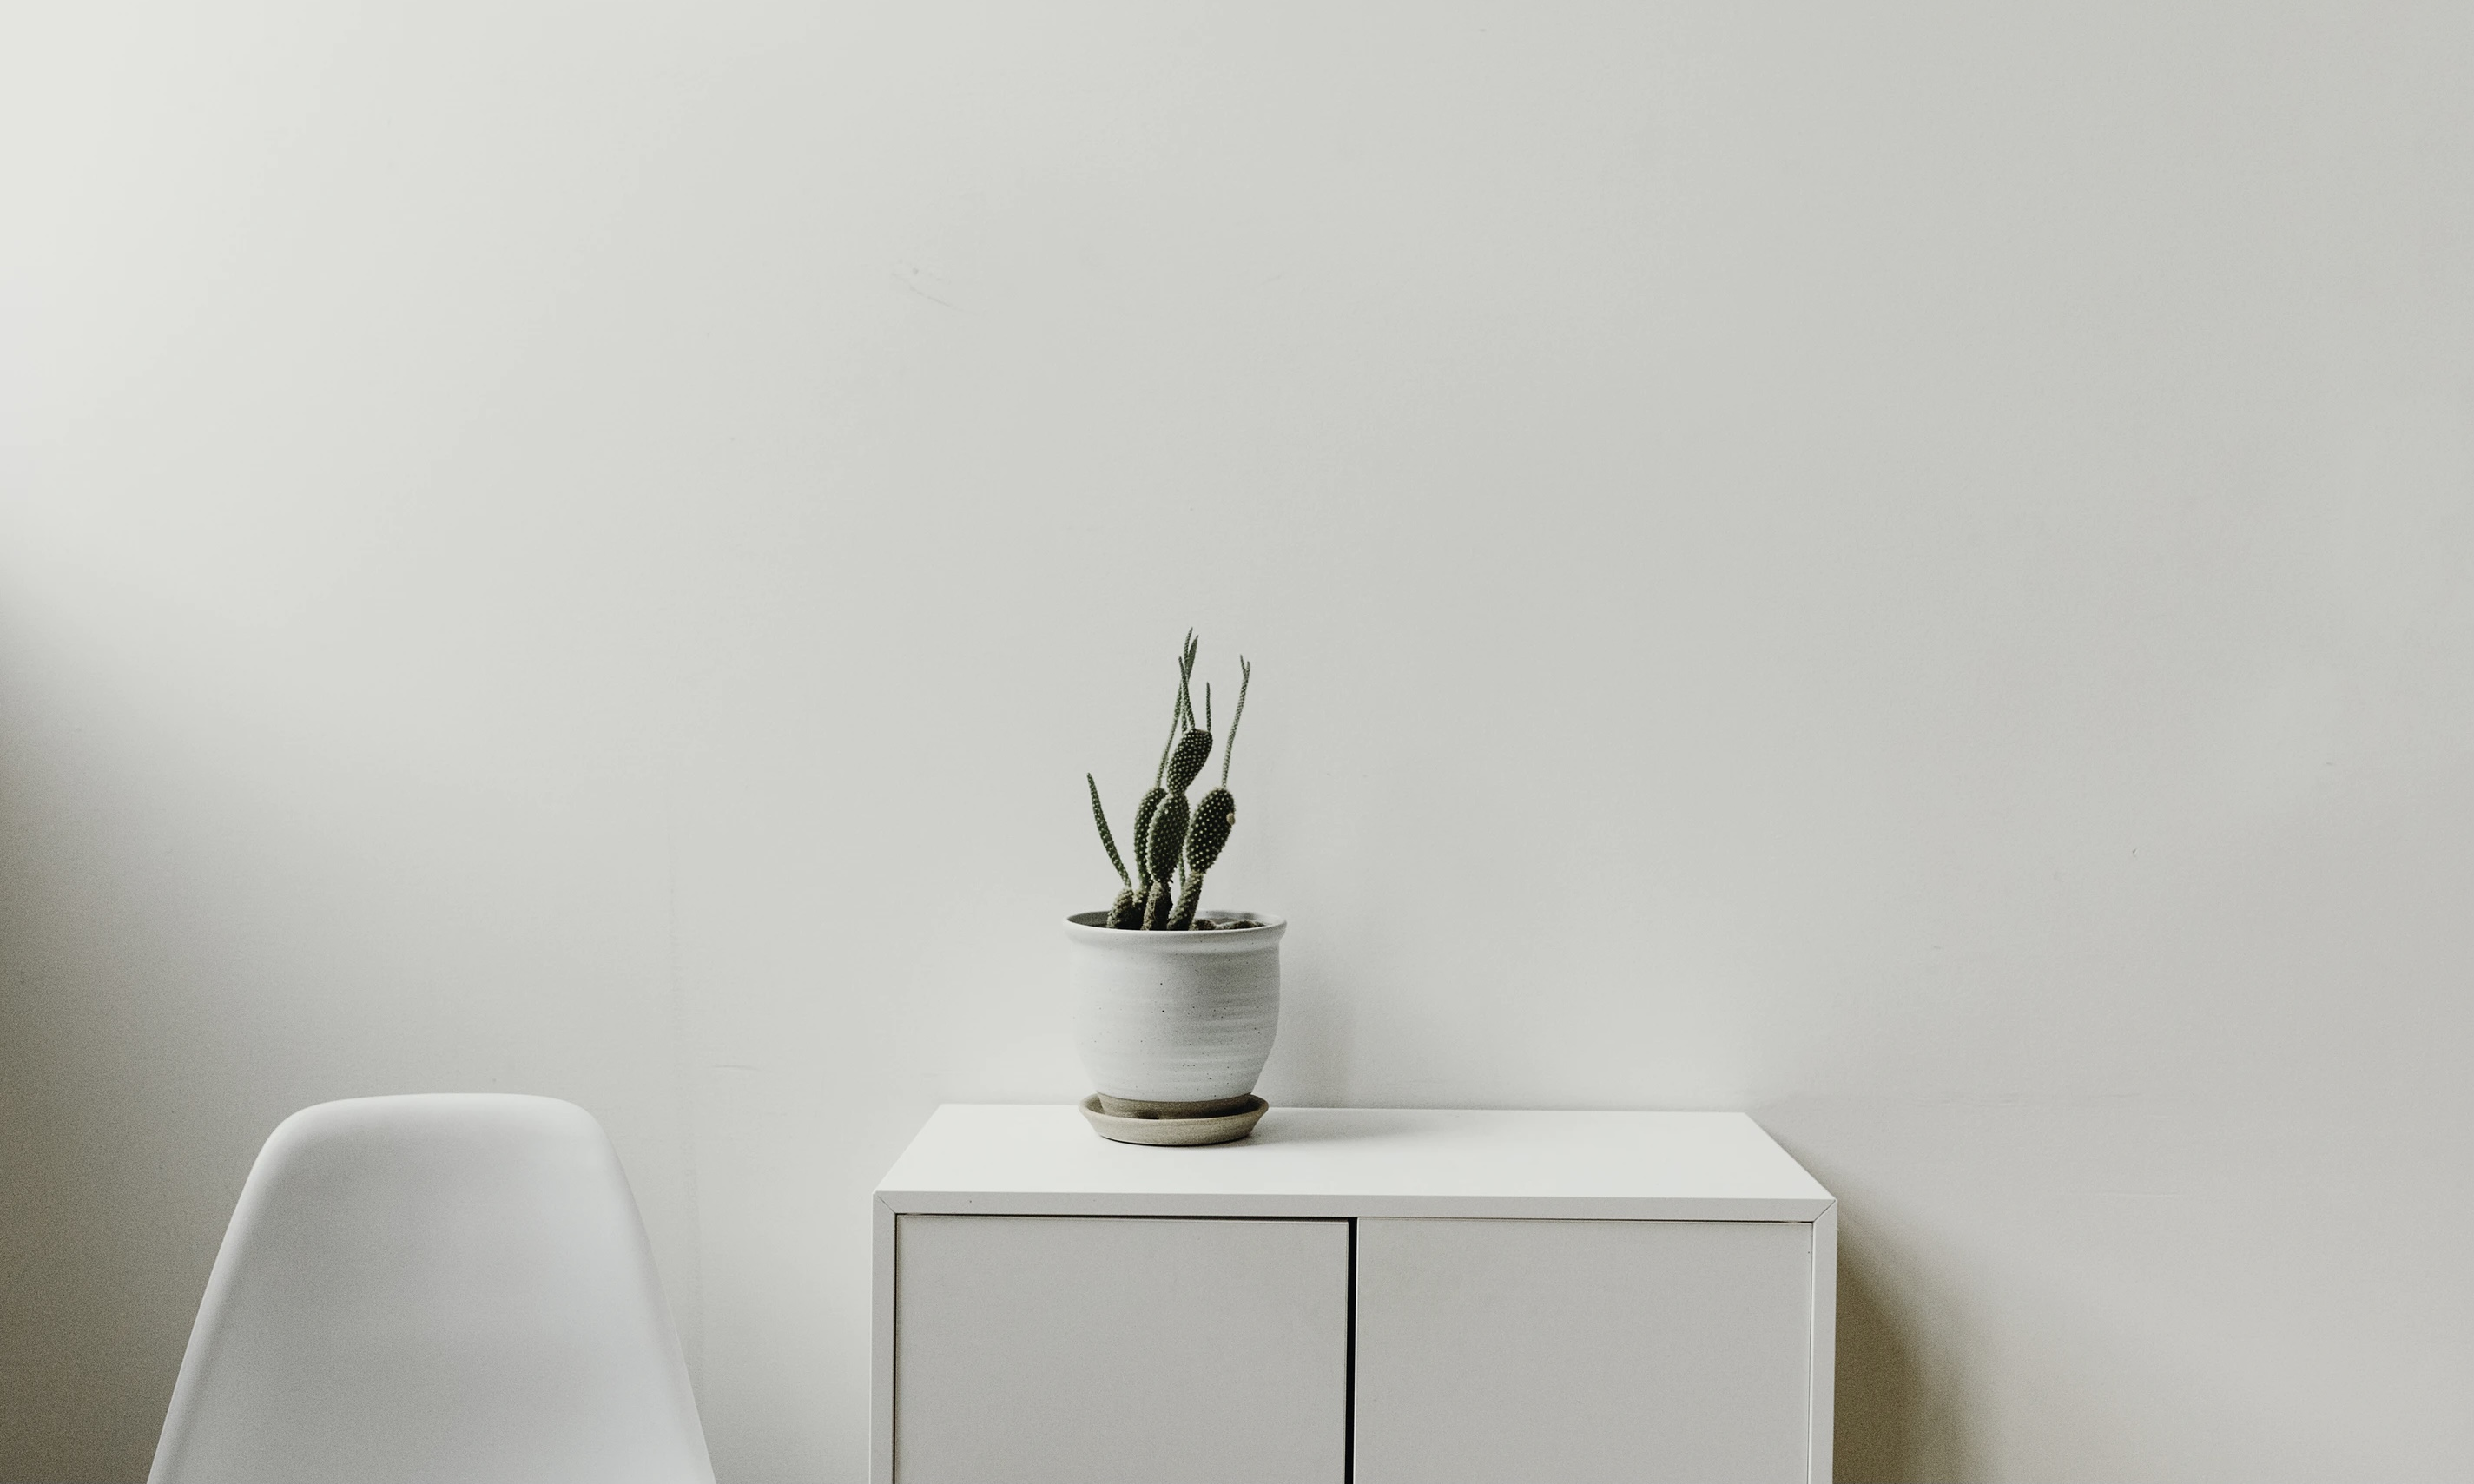 Green Plan on White Cabinet